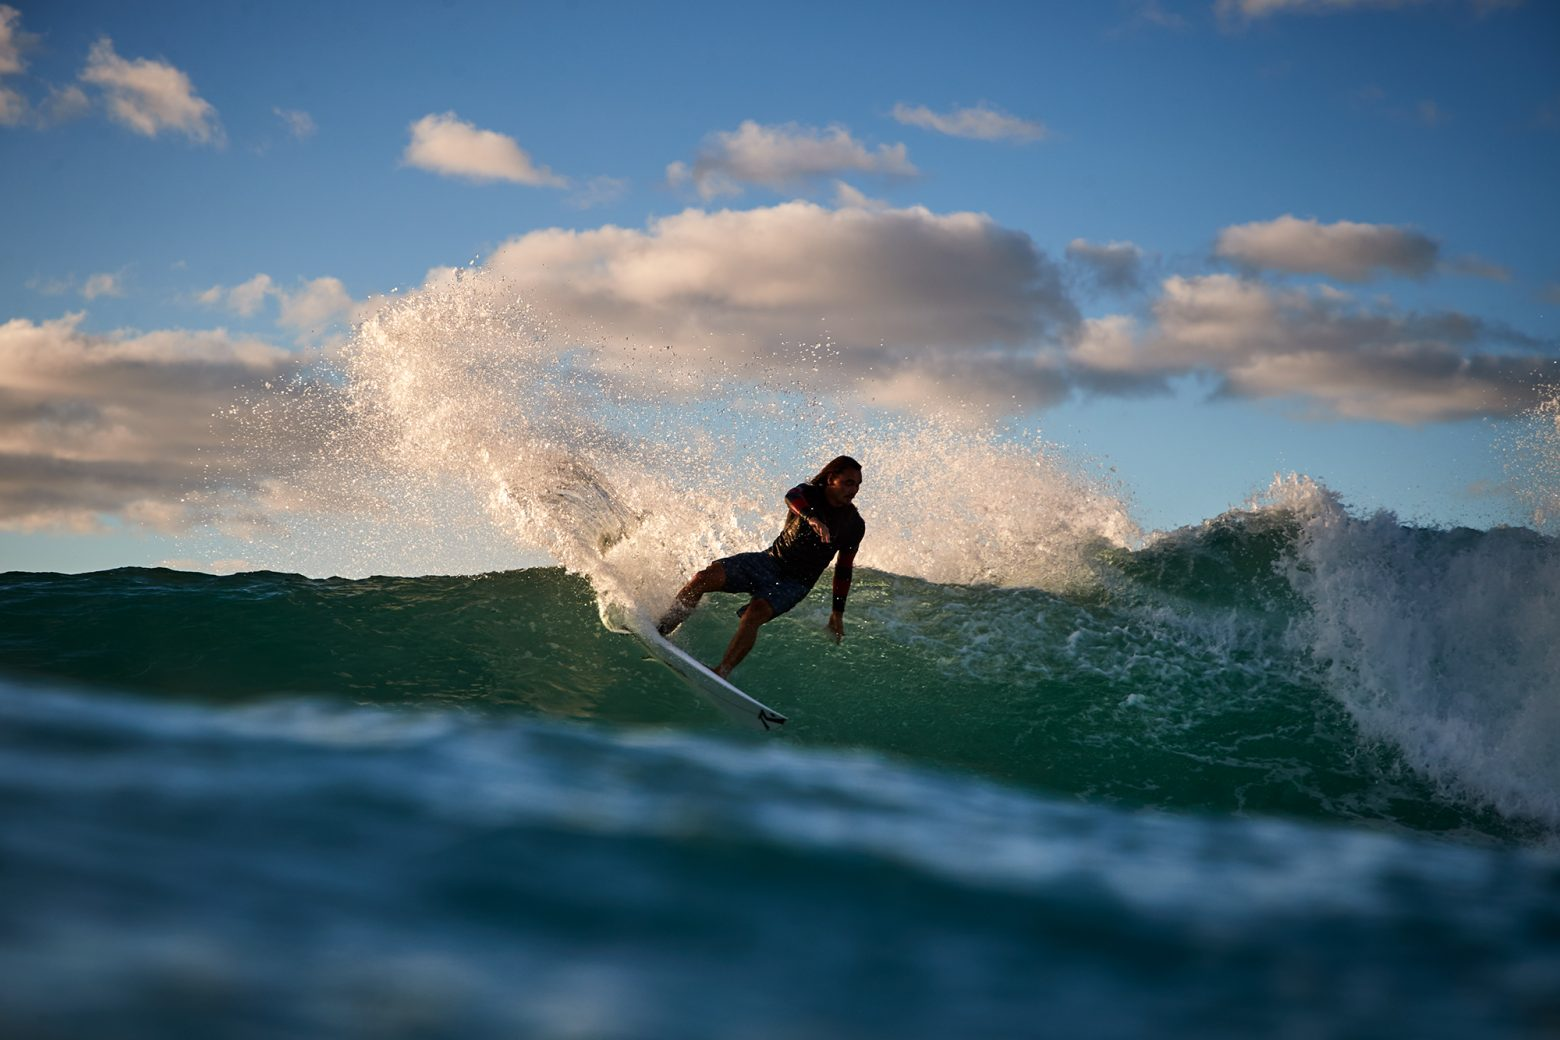 Pama Davies, shred, Bondi